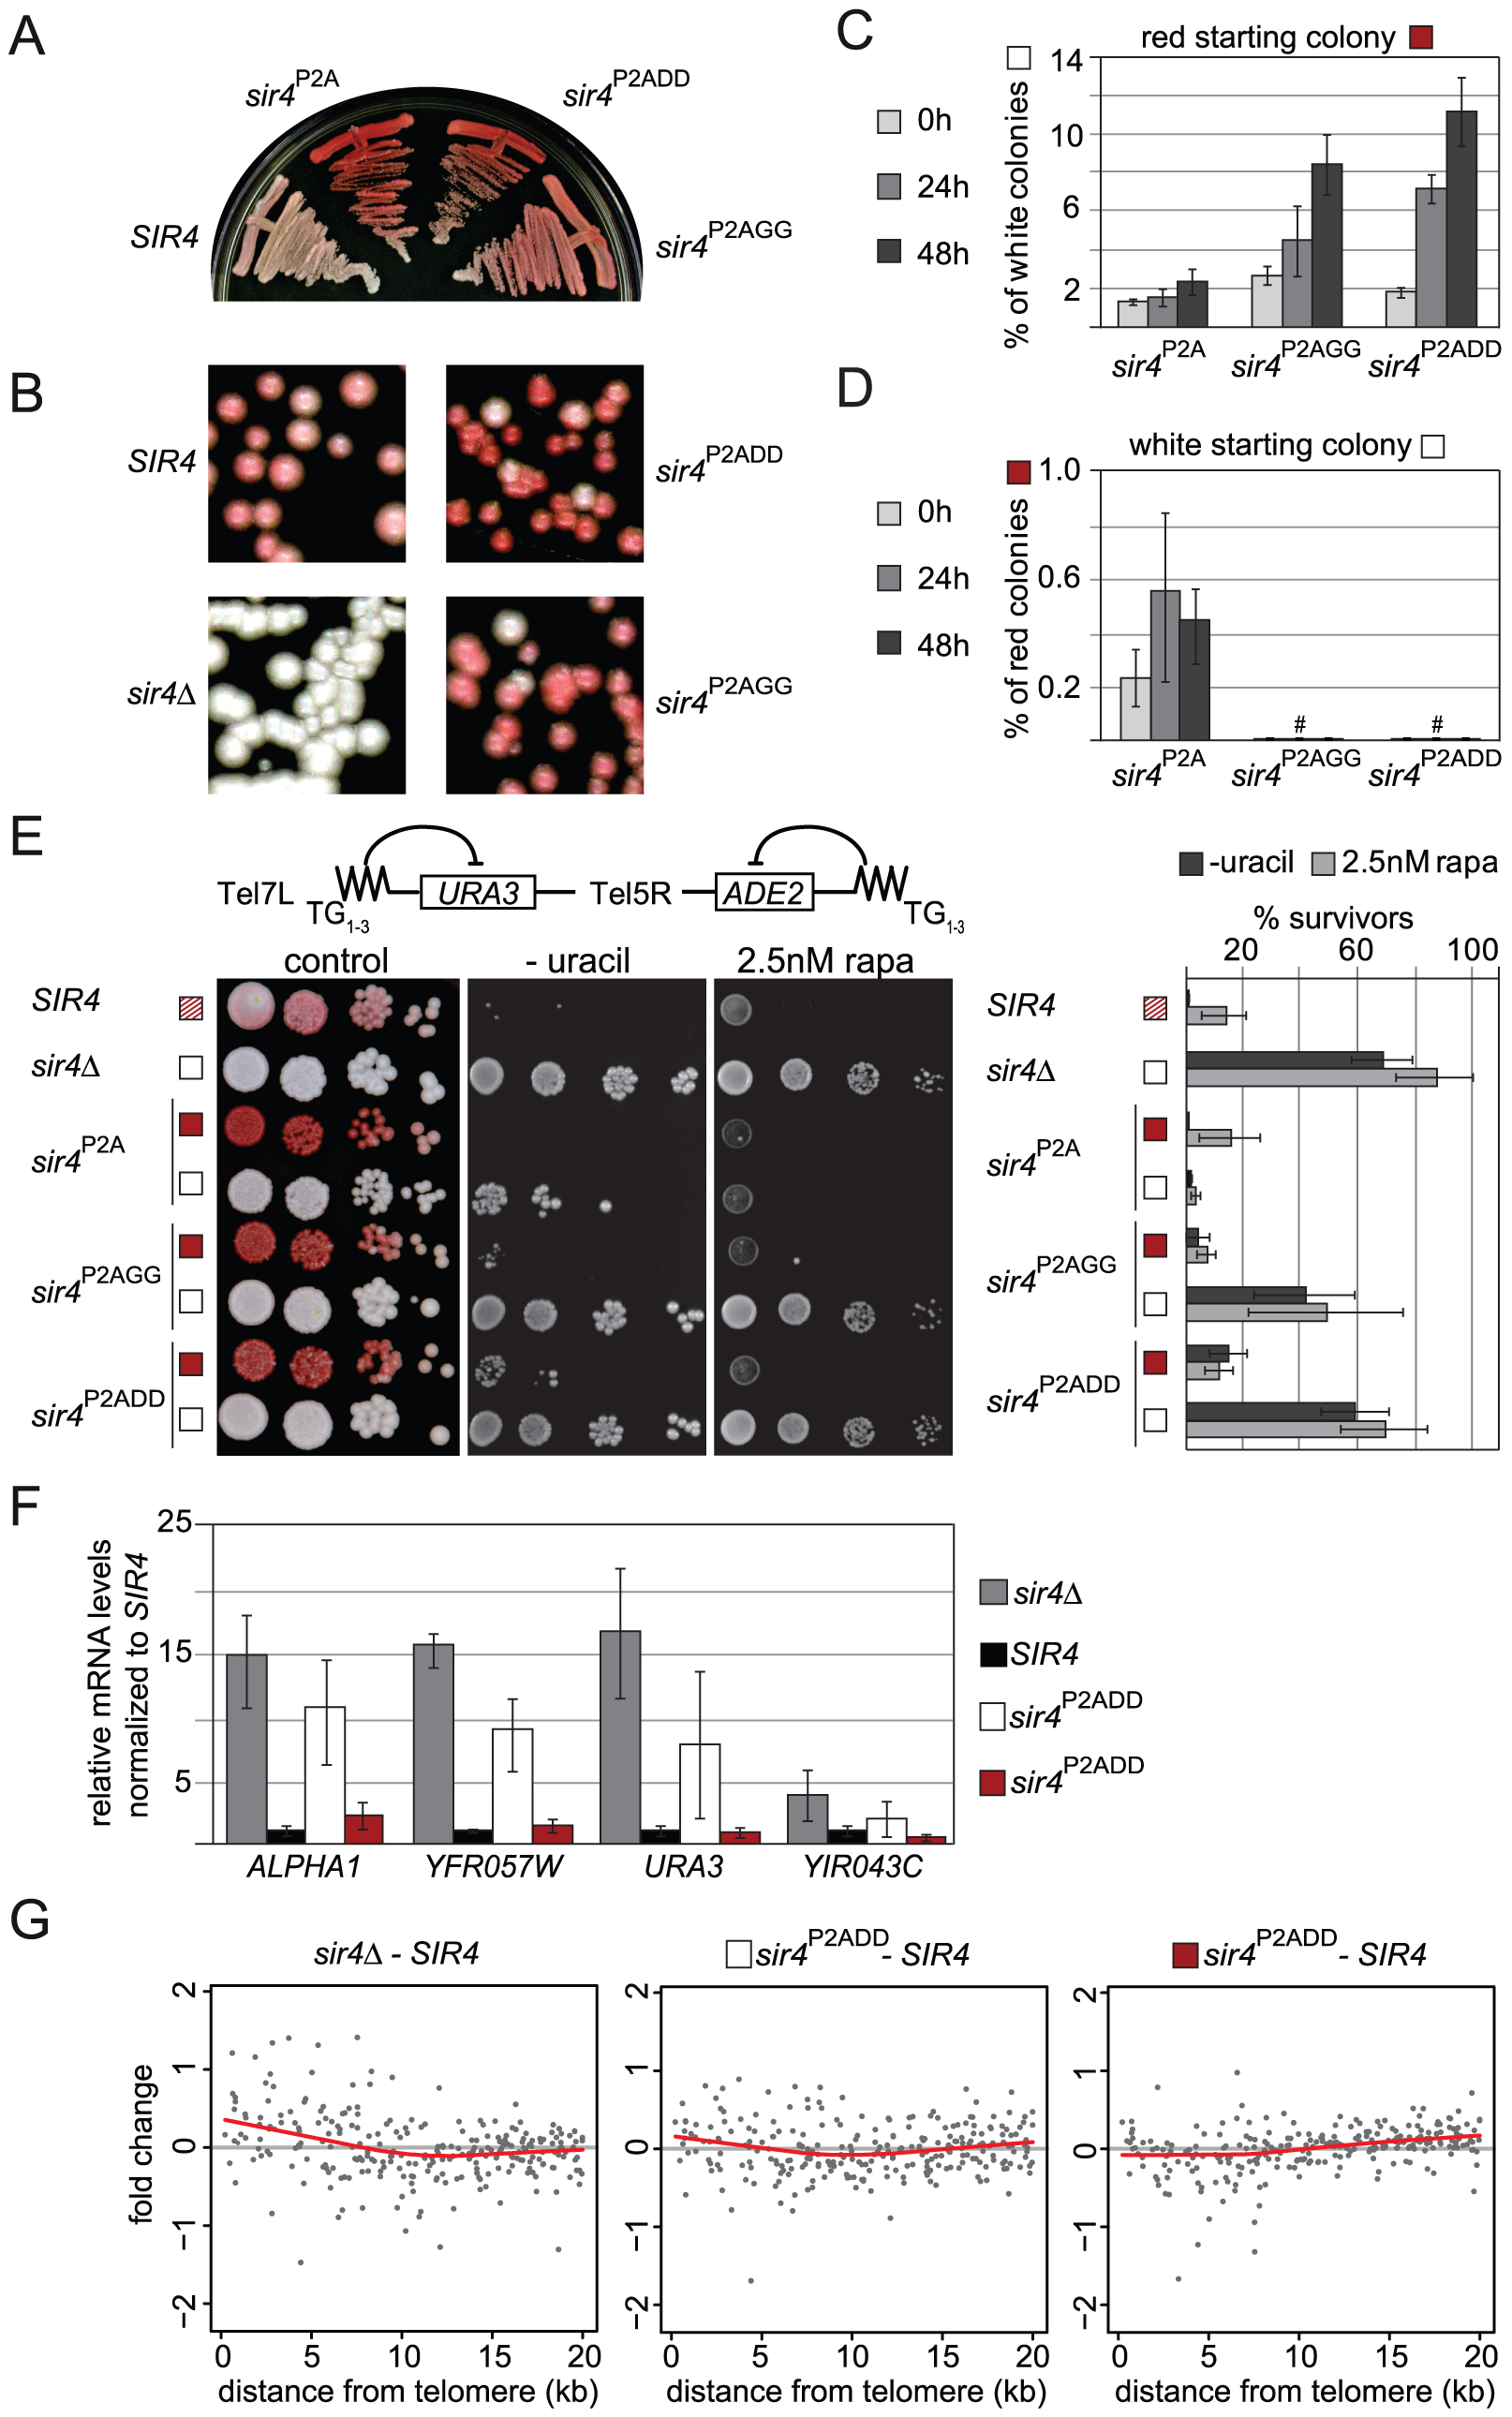 Sir4N phosphoacceptor site mutants show increased accumulation of active states and overall derepression of TPE.